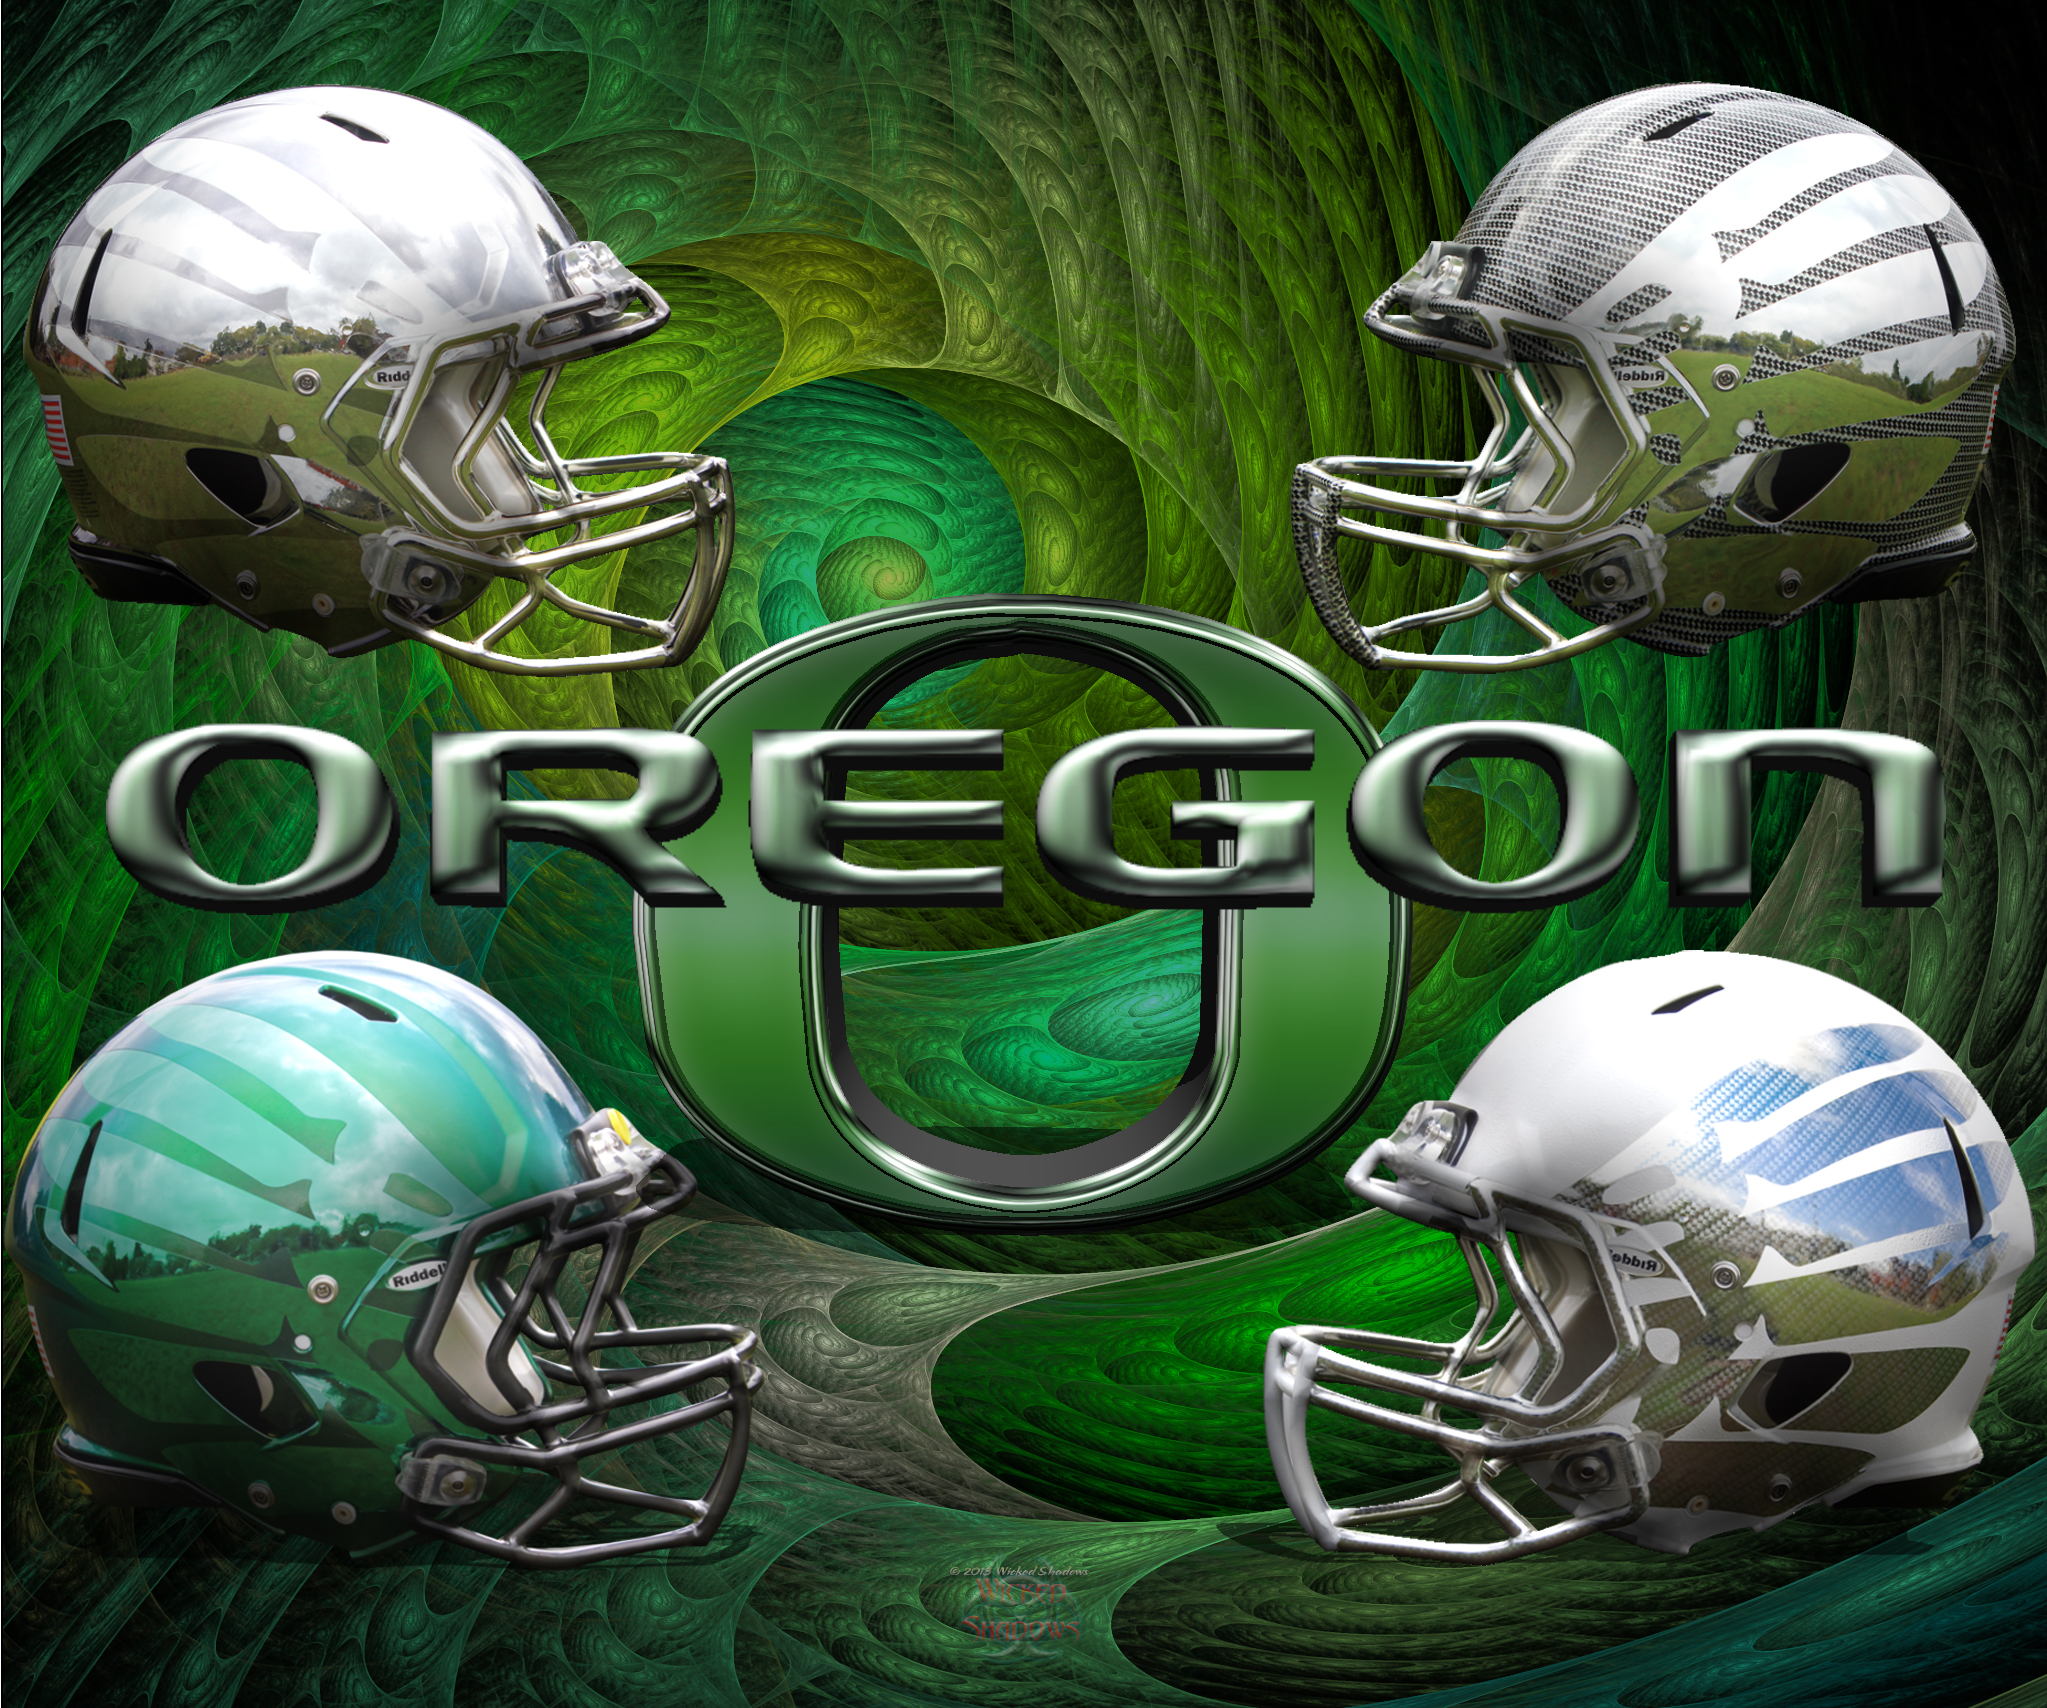 Oregon Ducks Backgrounds: Wallpapers By Wicked Shadows: January 2013